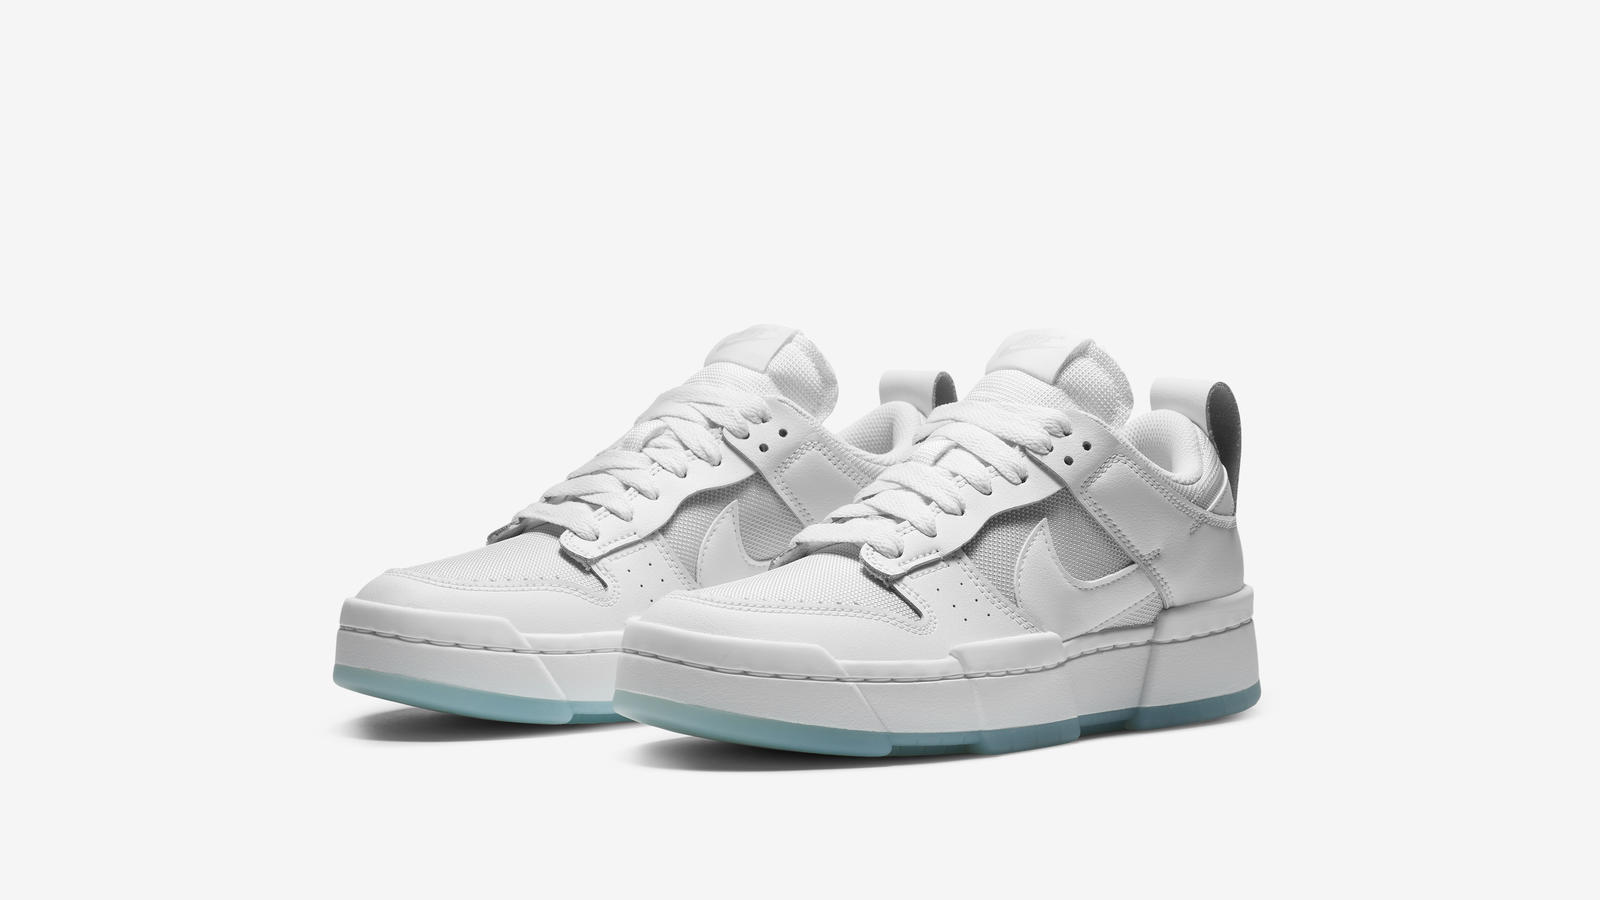 Nike Dunk Low Disrupt Official Images